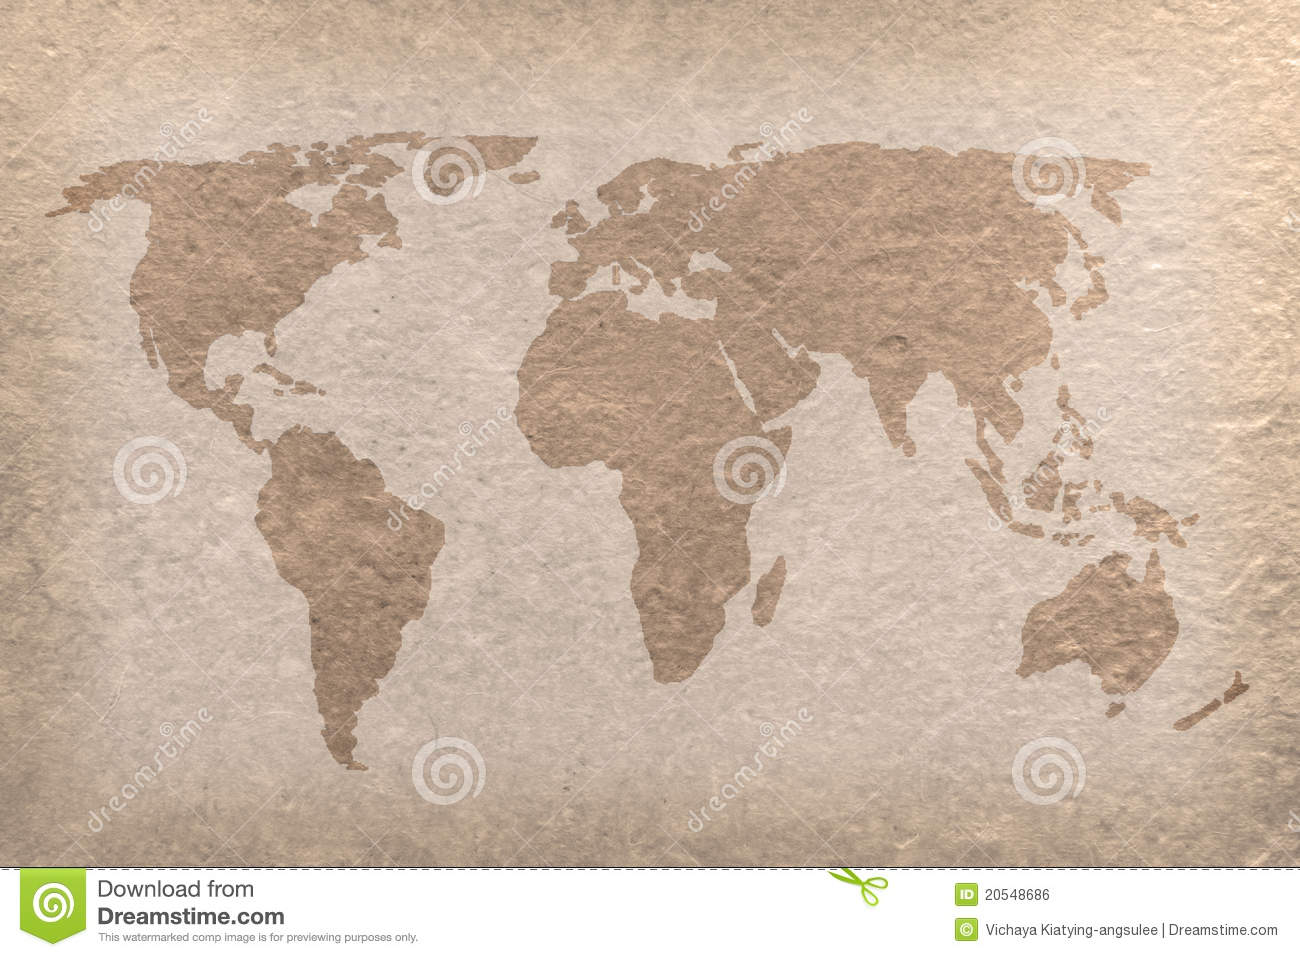 Vintage world map paper craft stock illustration illustration of vintage world map paper craft gumiabroncs Image collections